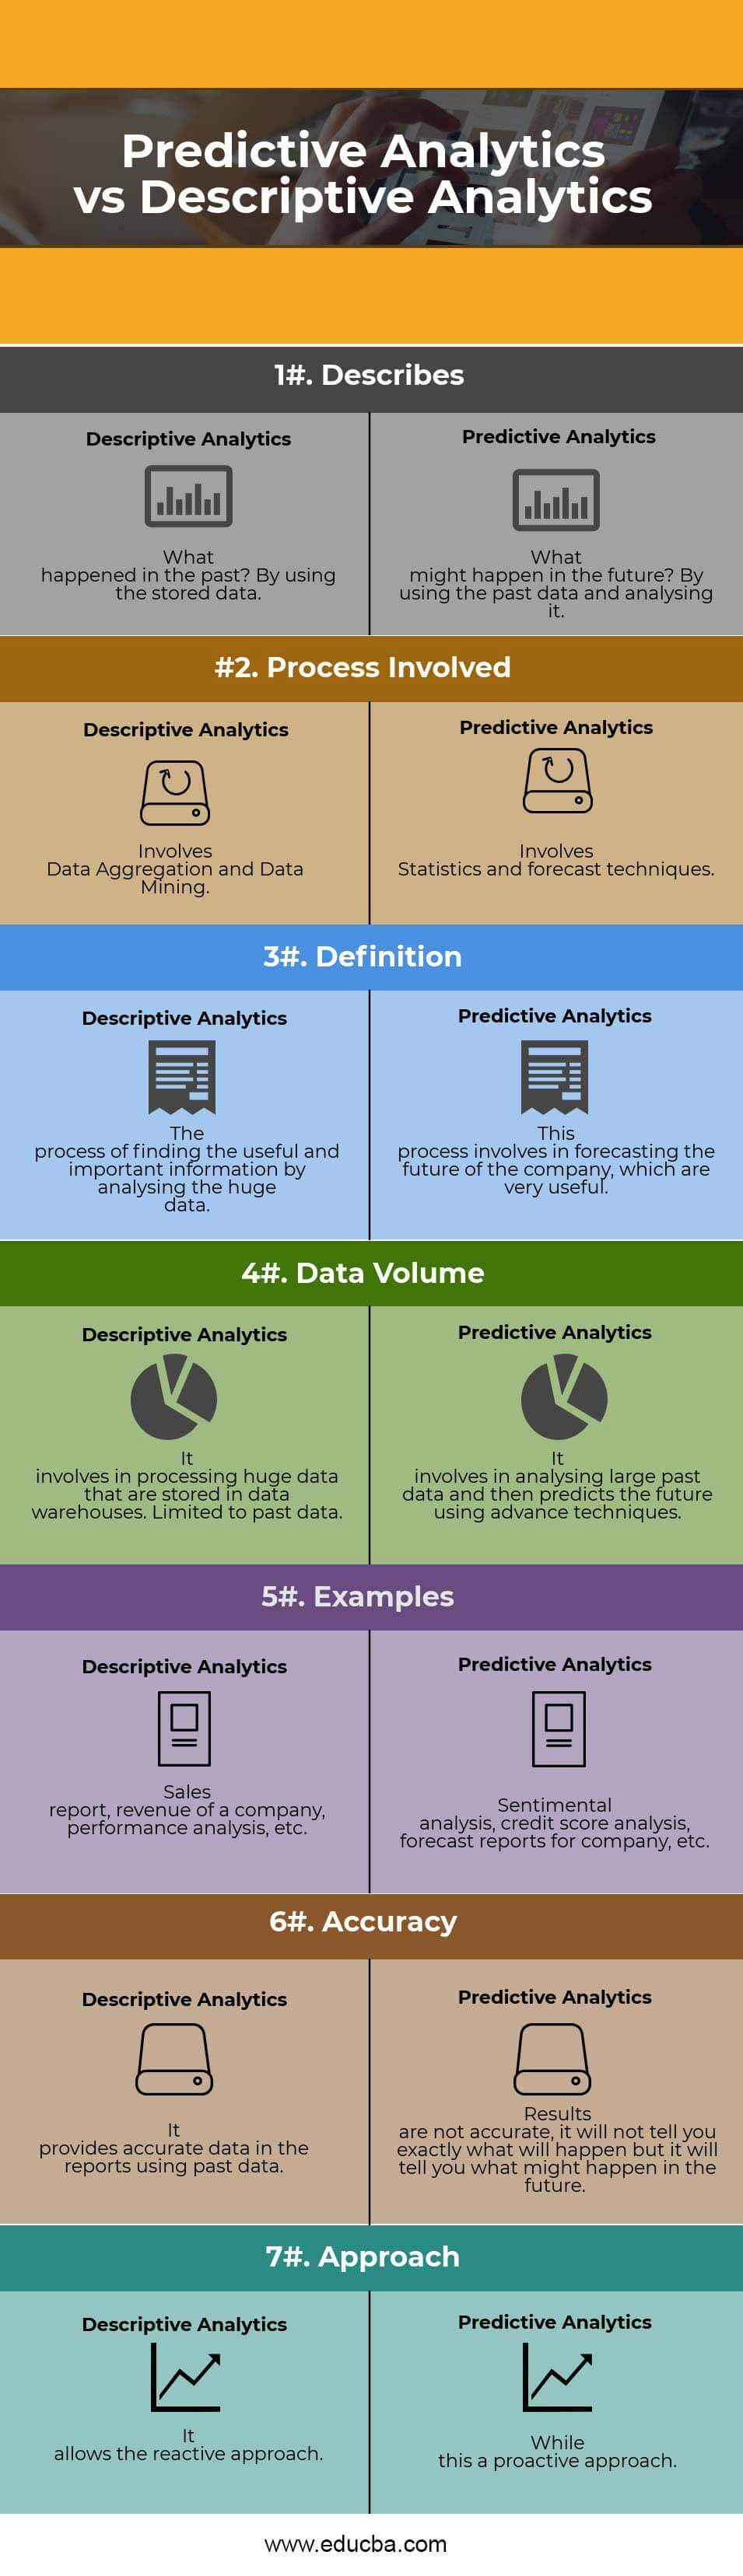 Predictive Analytics vs Descriptive Analytics